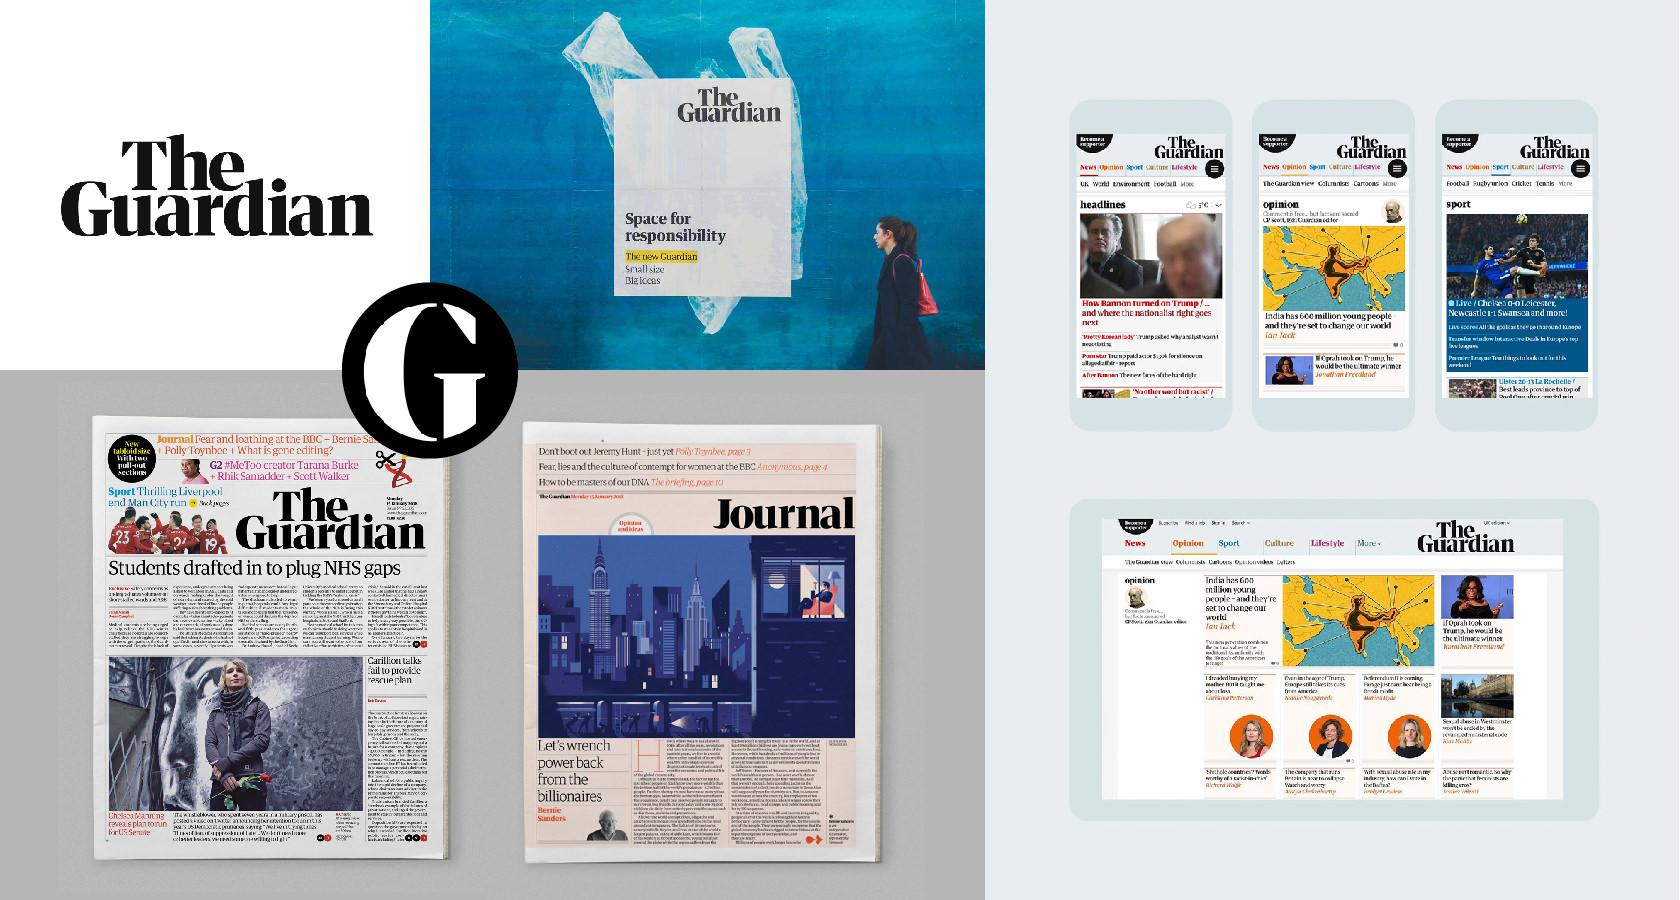 The Guardian's rebranding steps included assessing the brand experience.